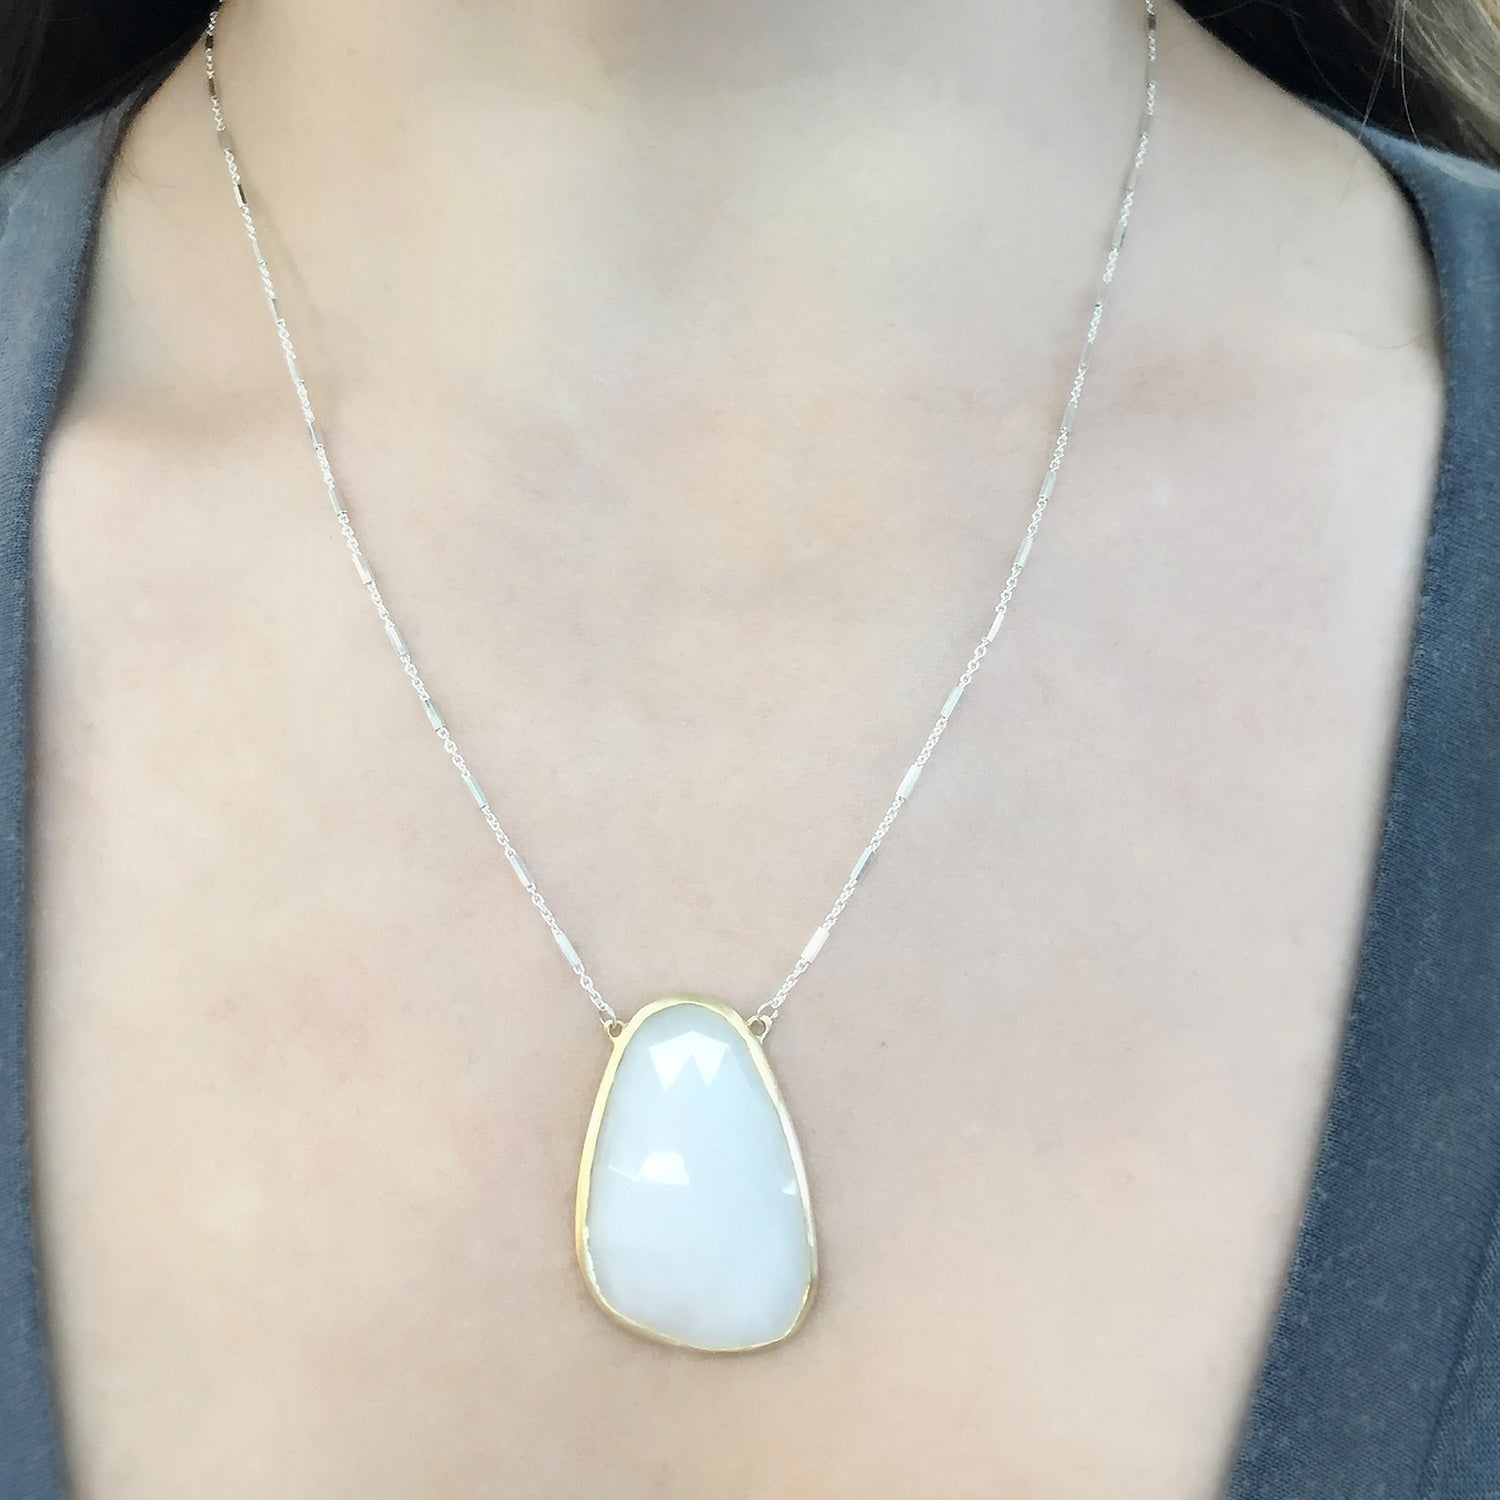 Gold and Silver White Quartz Necklace